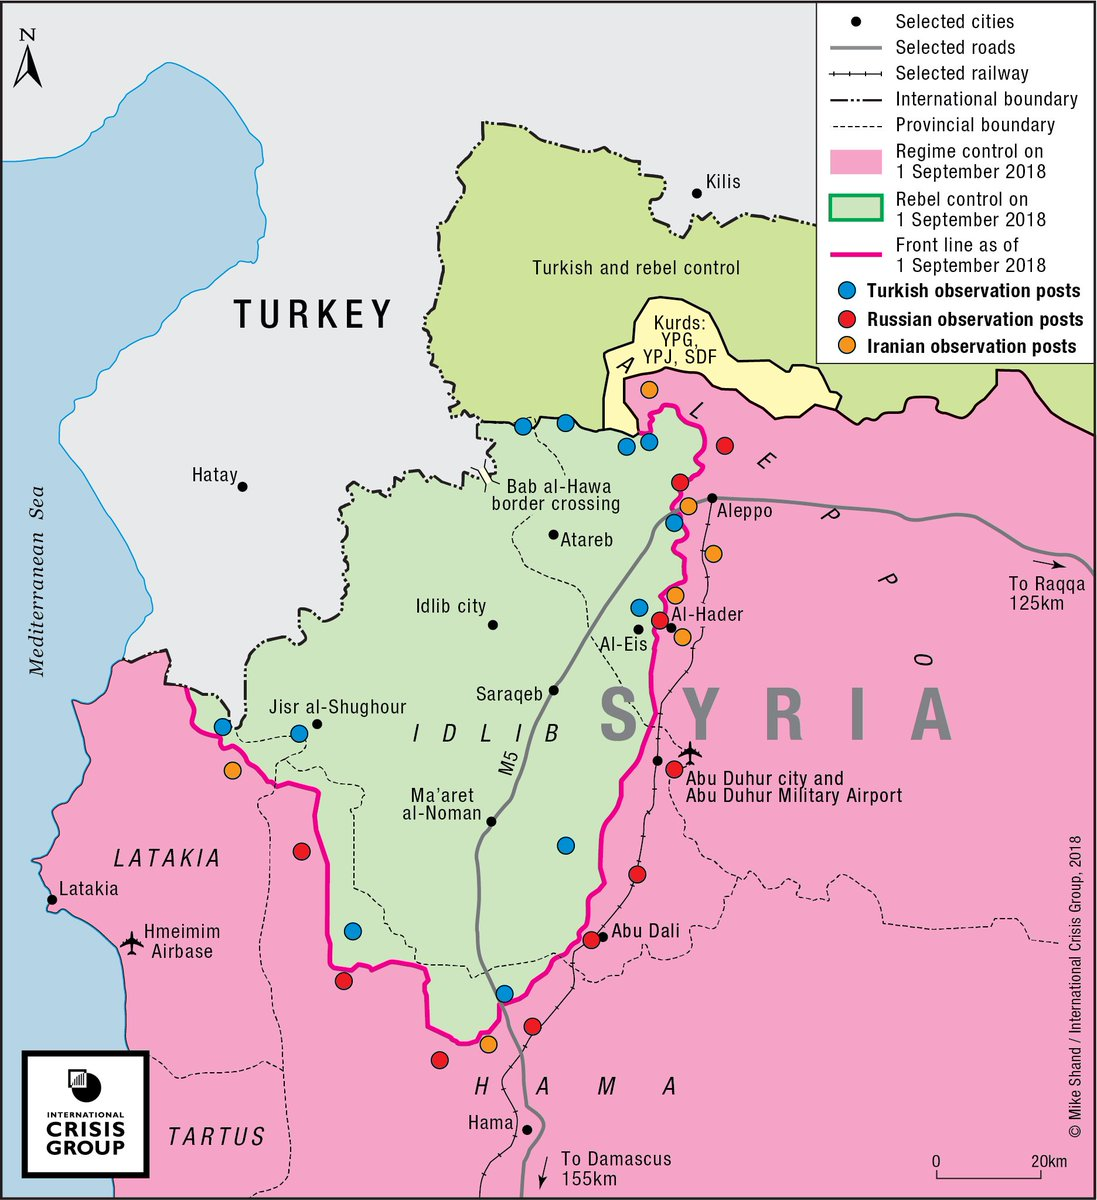 Tehran Middle East Map.Sam Heller On Twitter Map Of Idlib S De Escalation Zone From